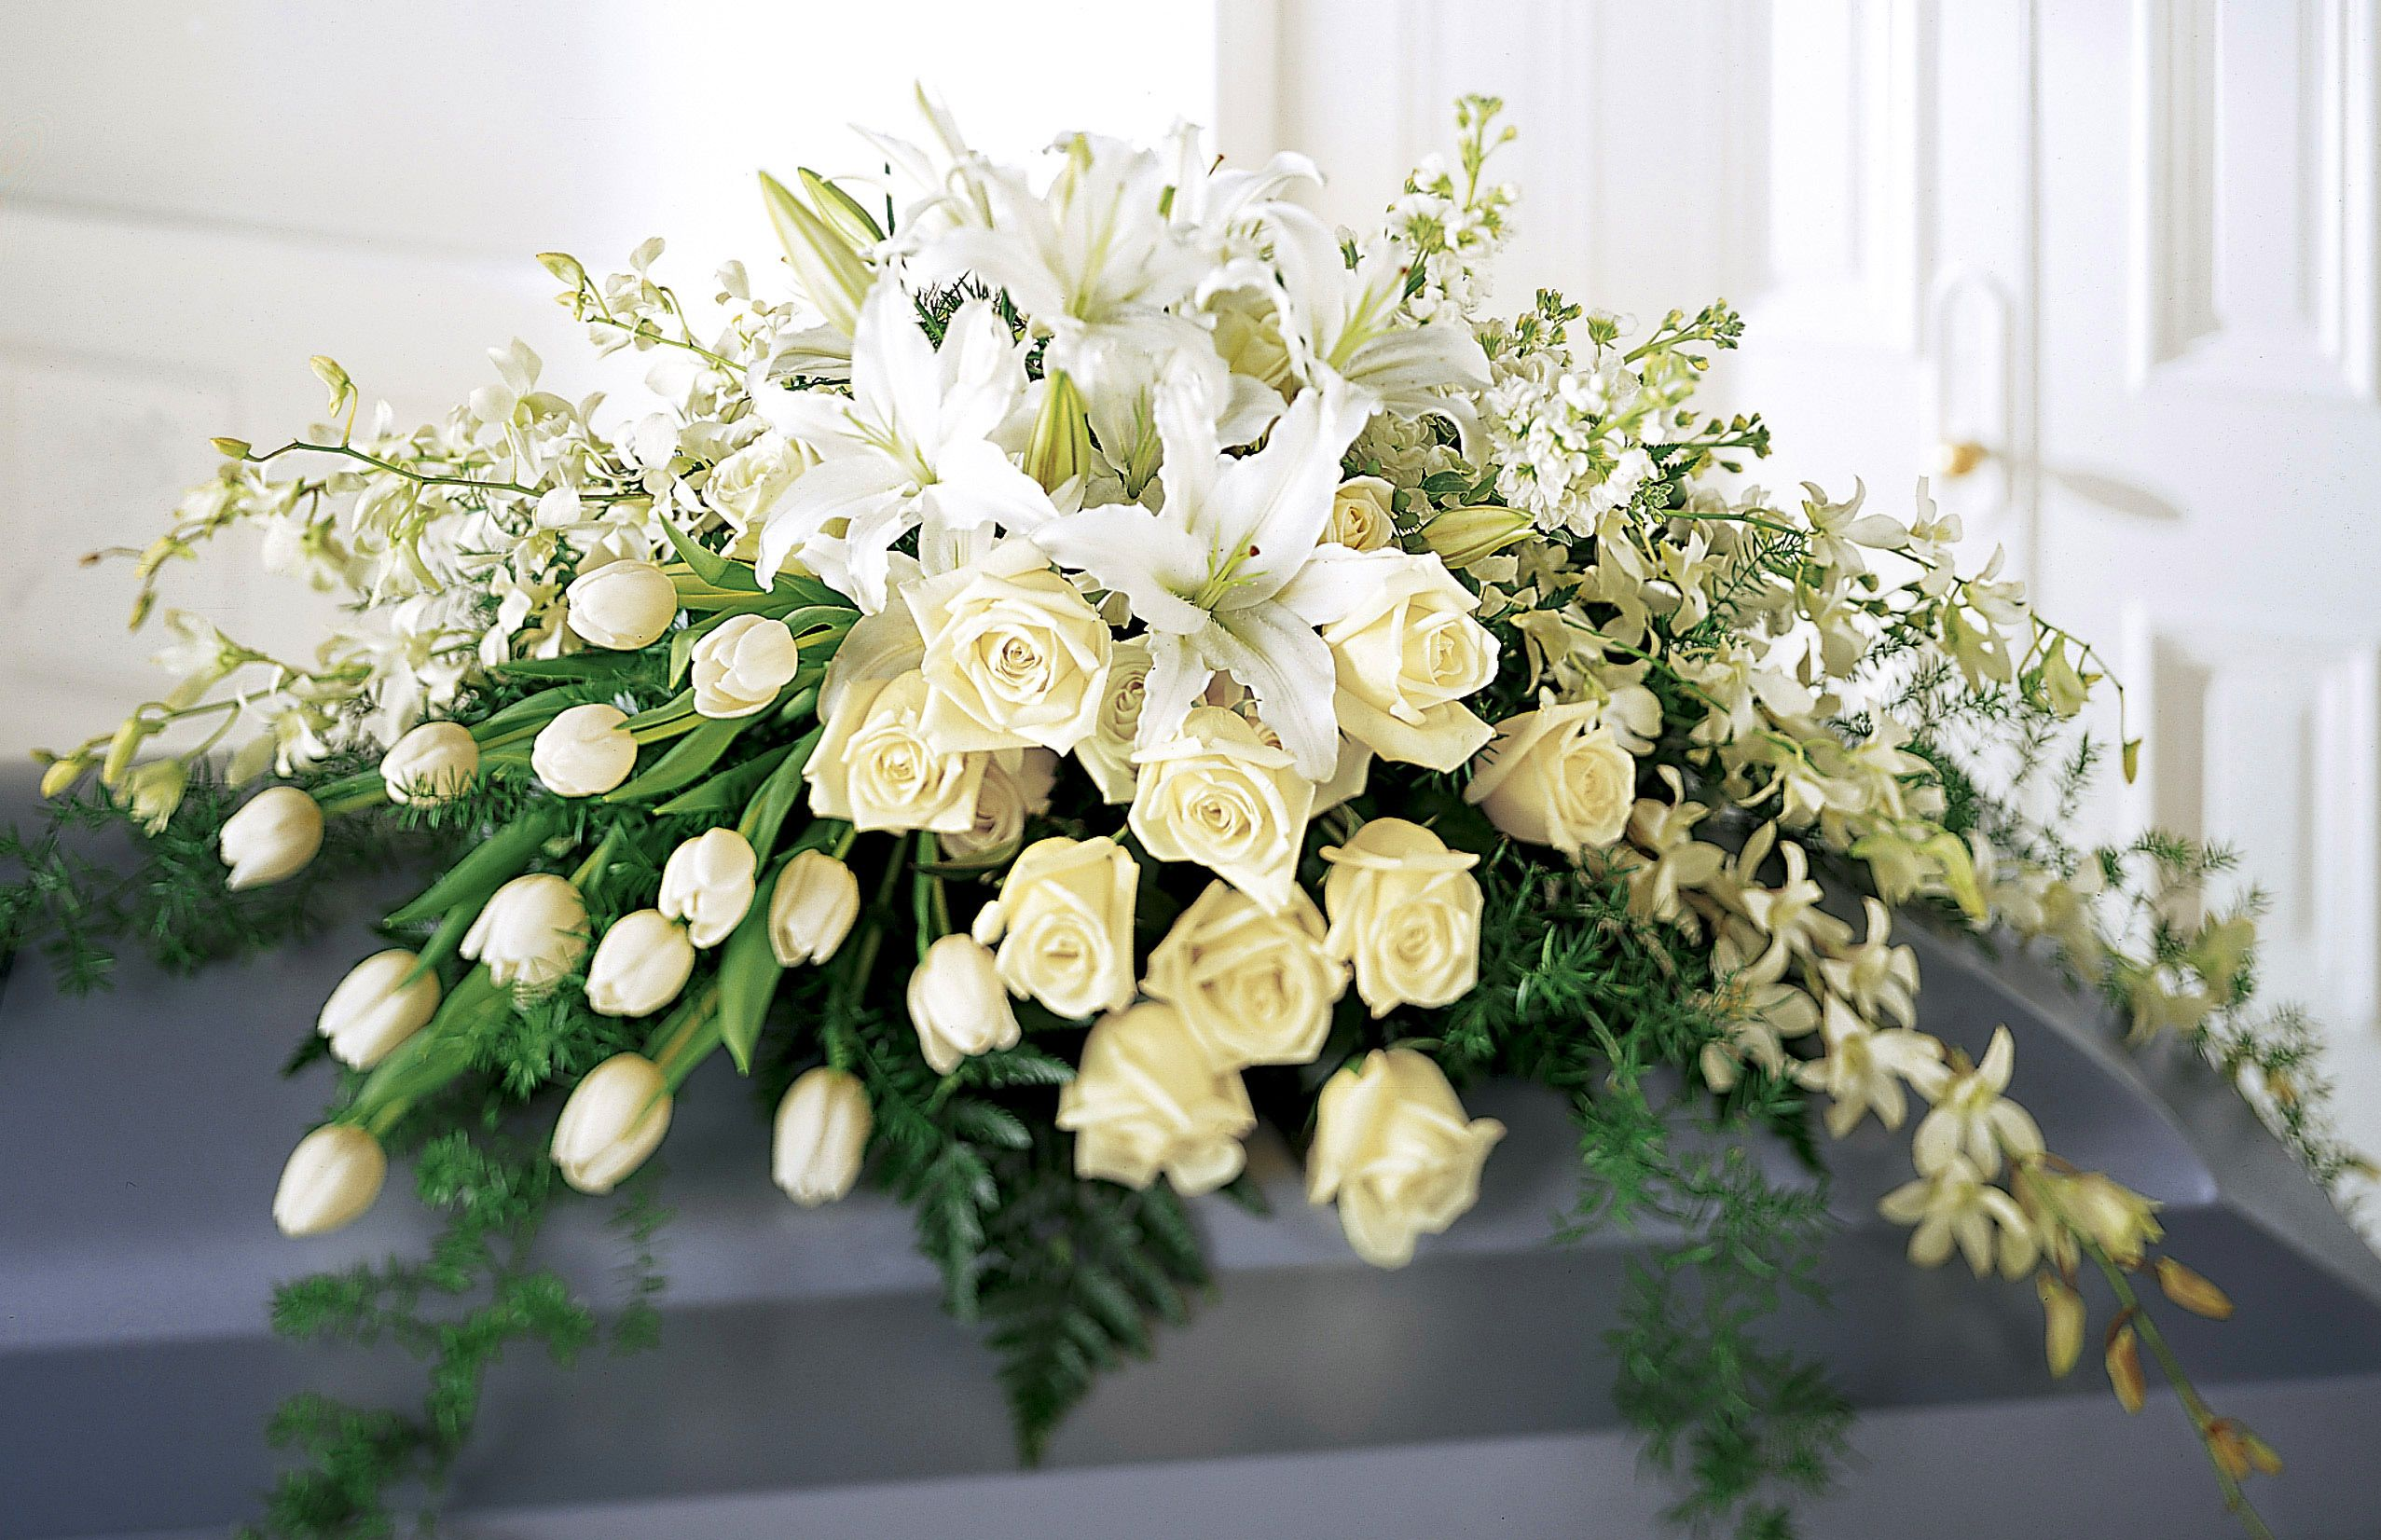 Direct Funeral Floral Arrangements And Their Significance